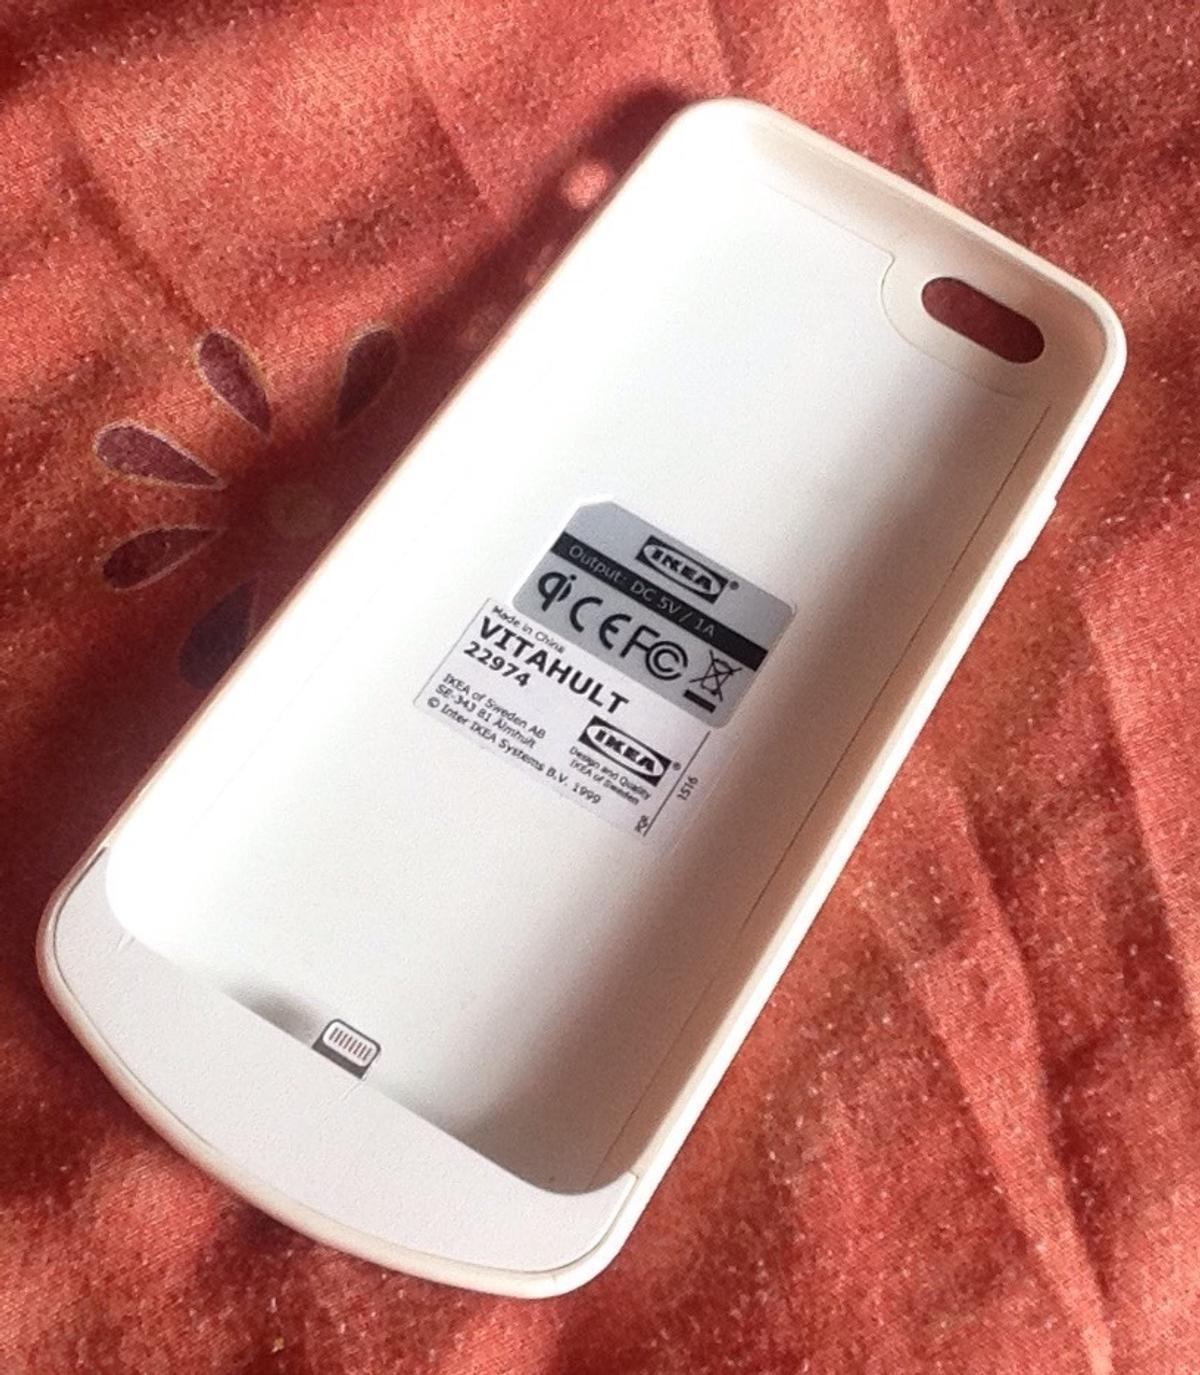 official photos b251c d43fe Wireless charging iPhone 6 Ikea vitahult case in GU15 Camberley for ...